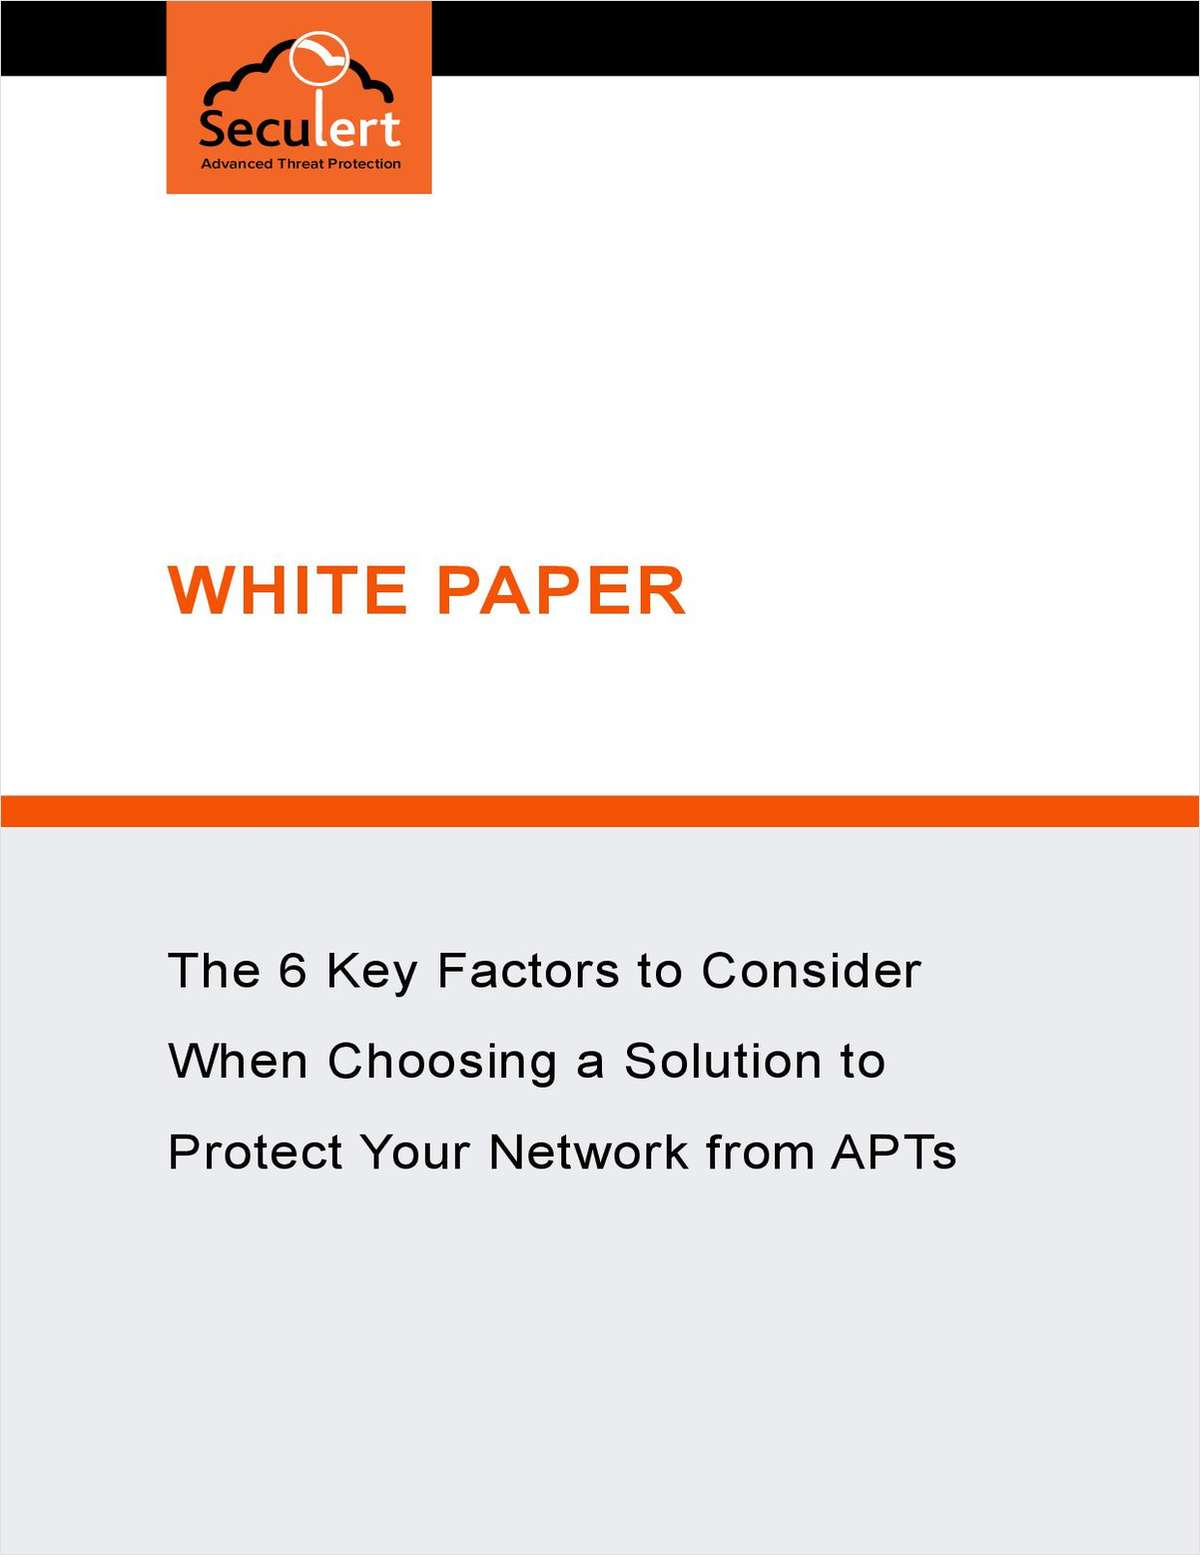 The 6 Key Factors to Consider when Choosing a Solution to Protect Your Network